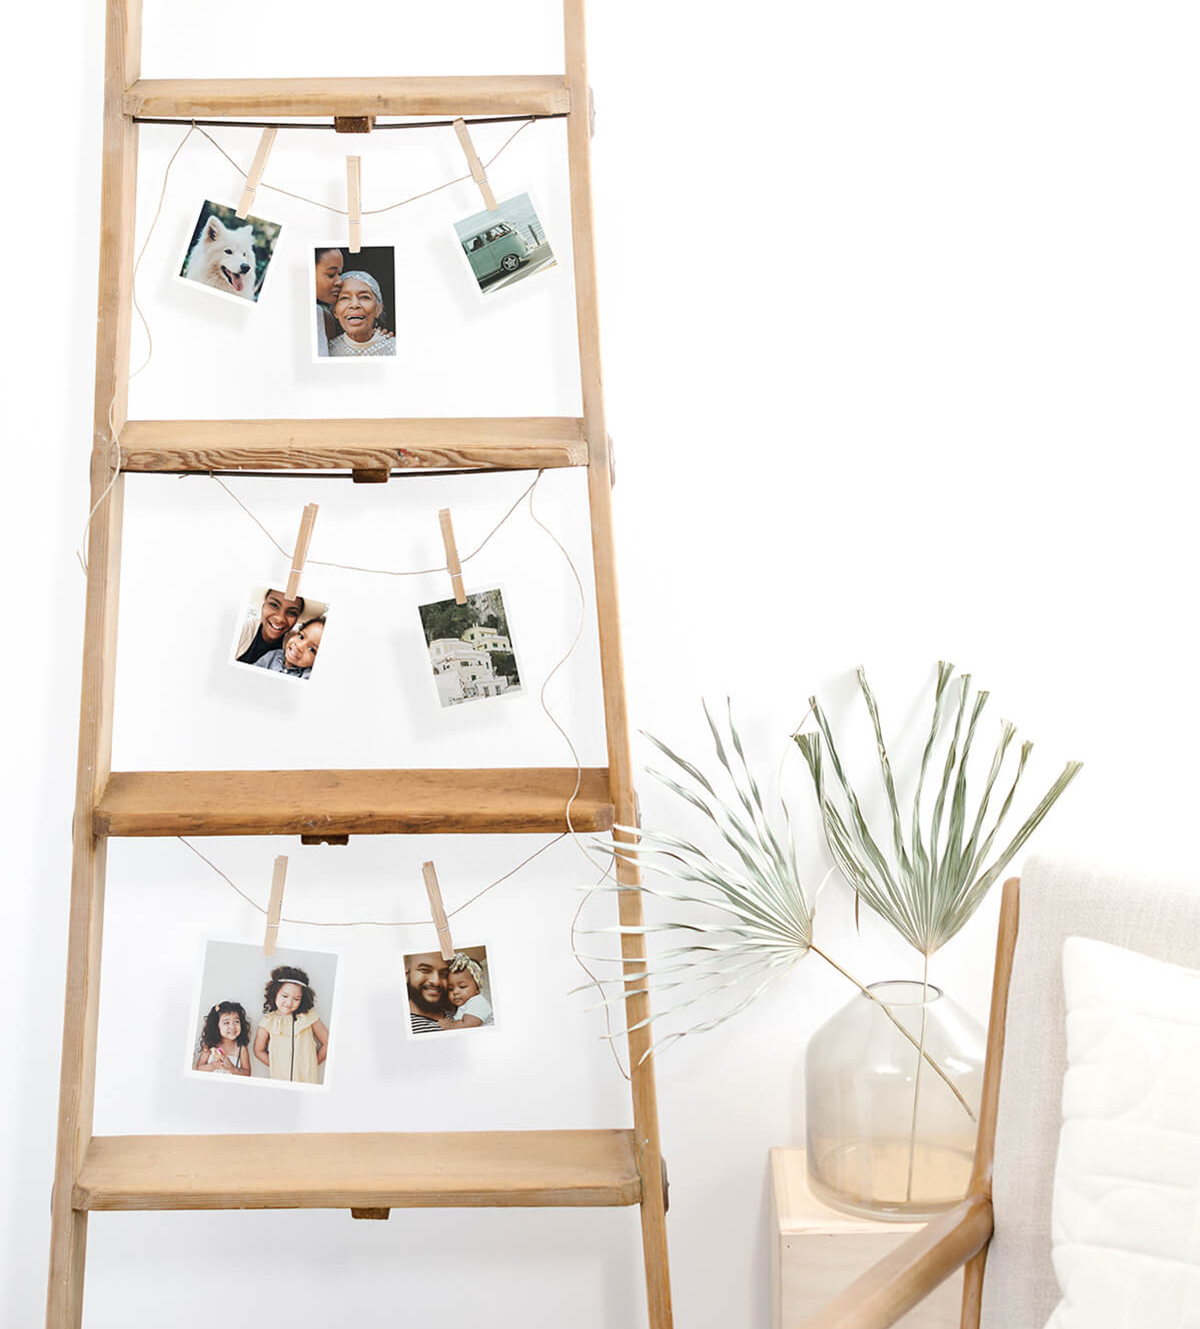 Wooden ladder repurposed to display photo prints